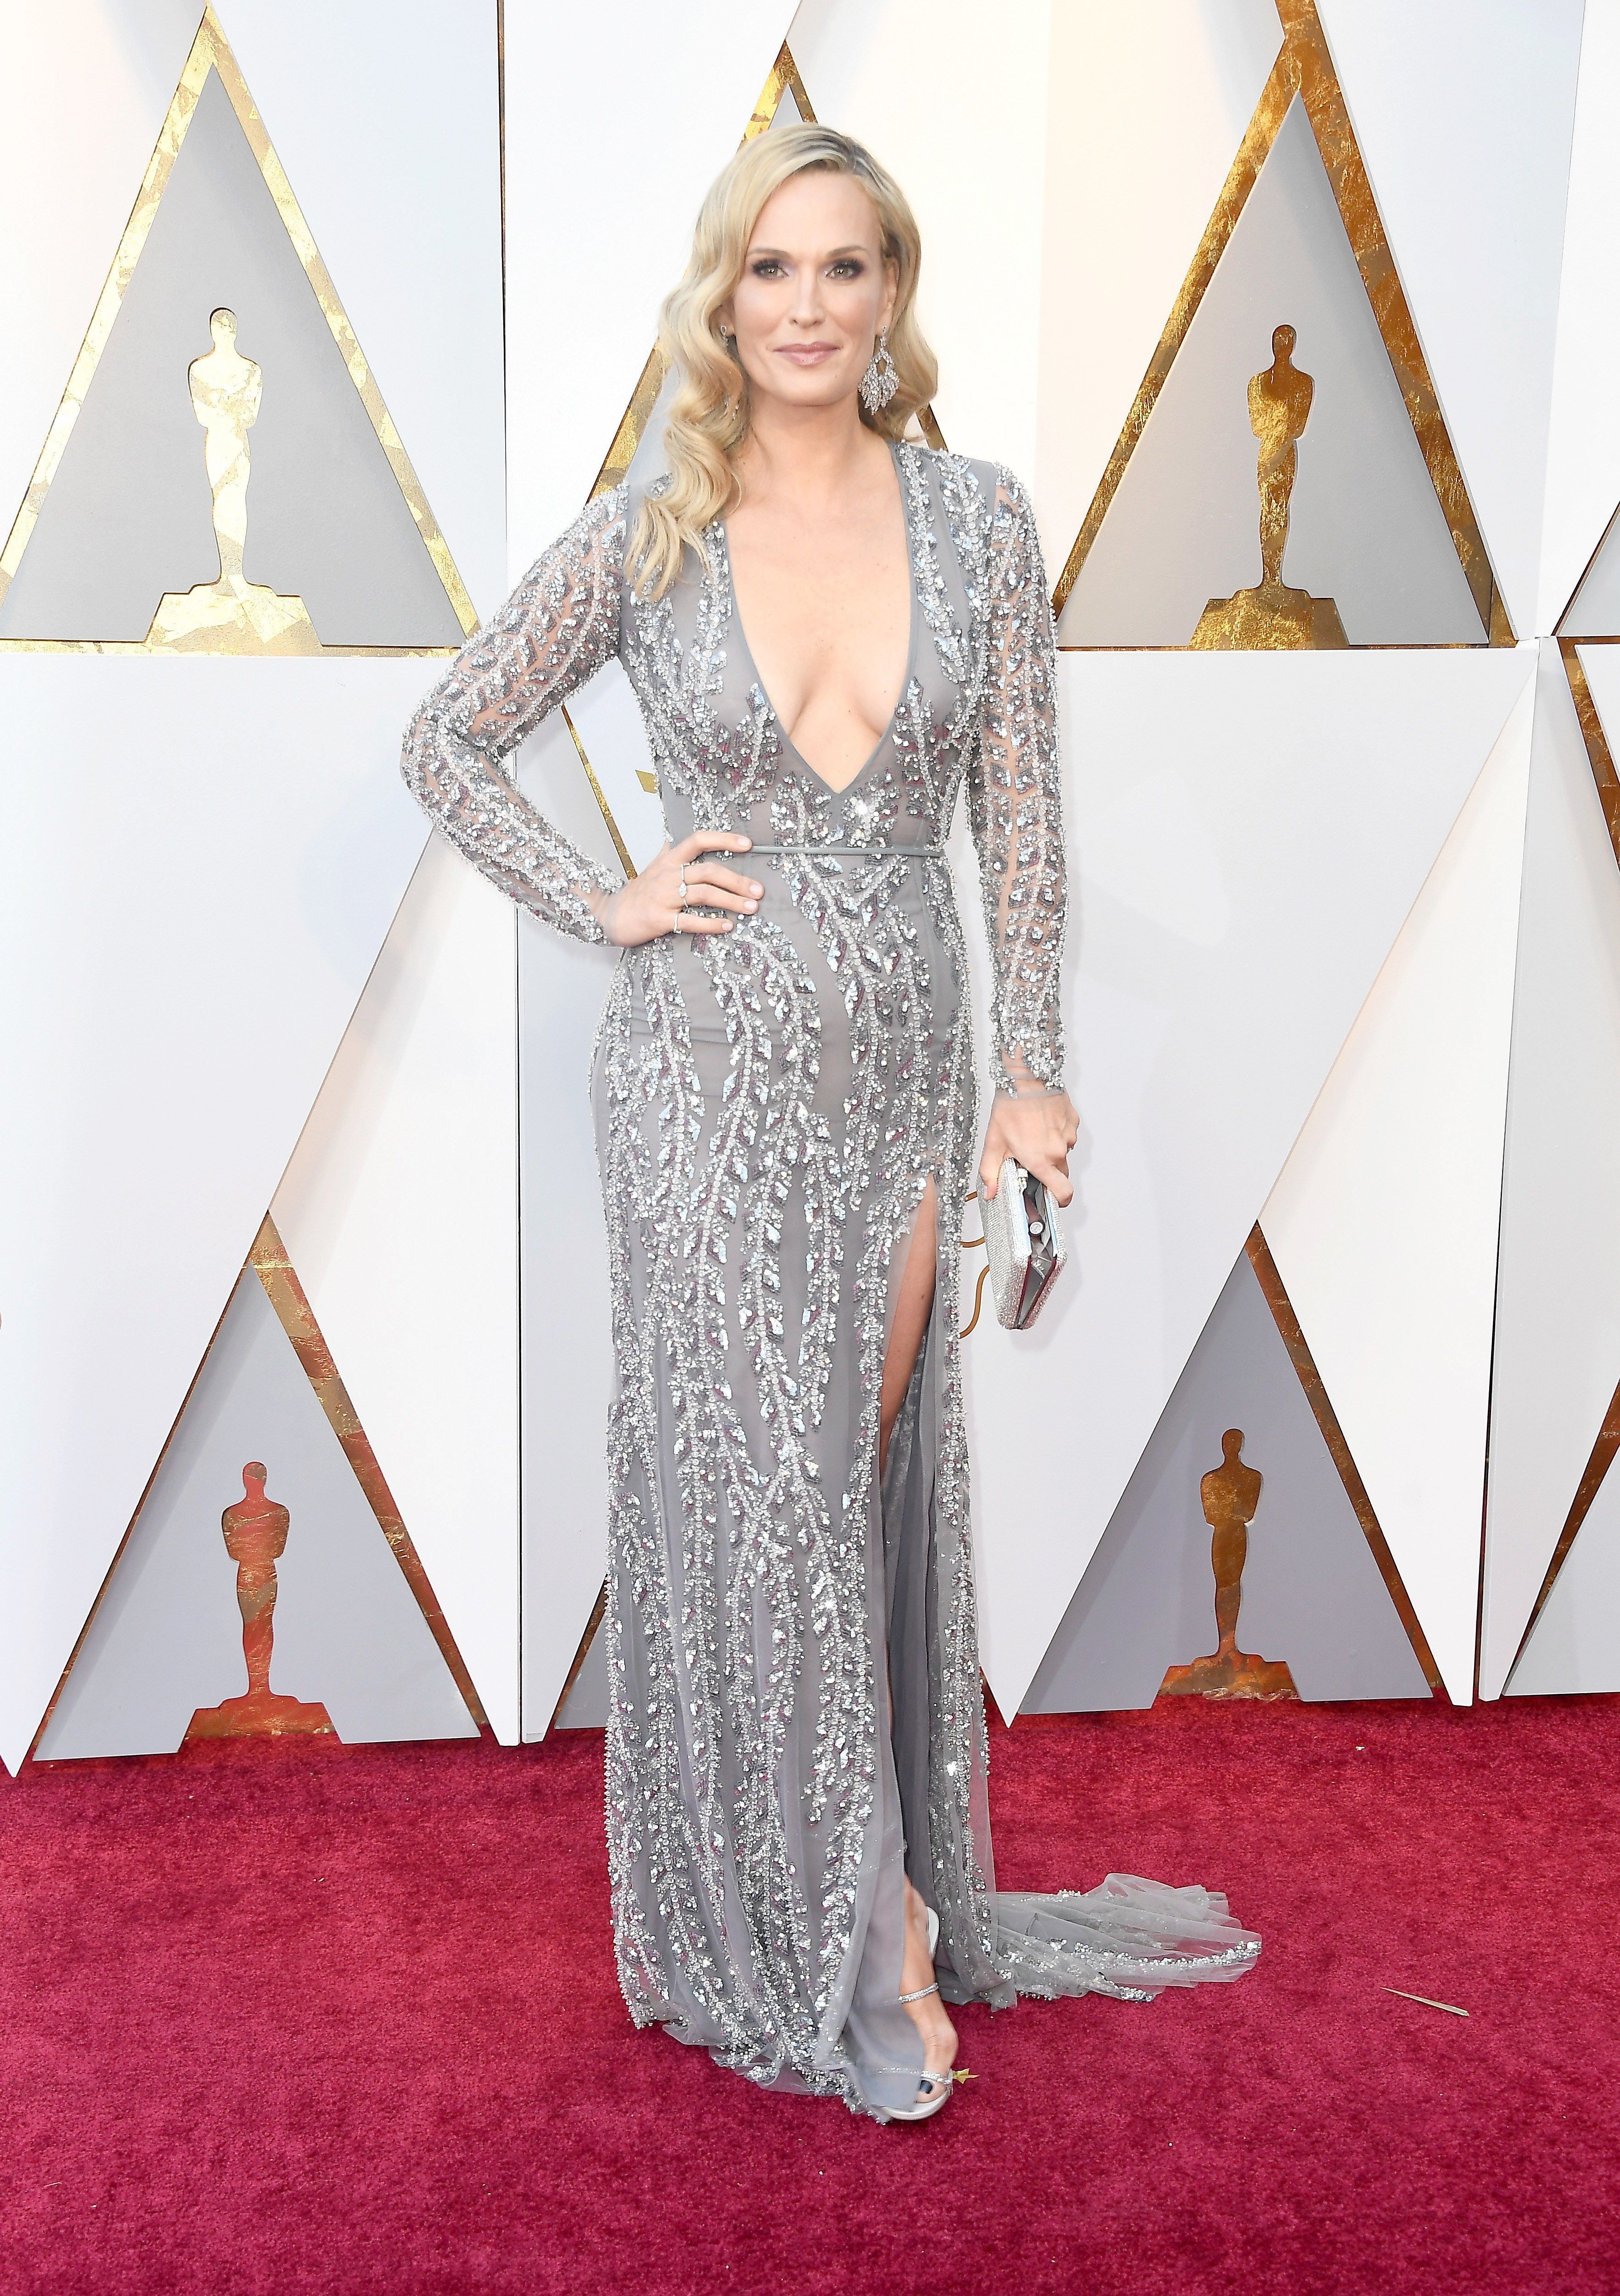 Oscars fashionulive from the red carpet zefinka fashion blog